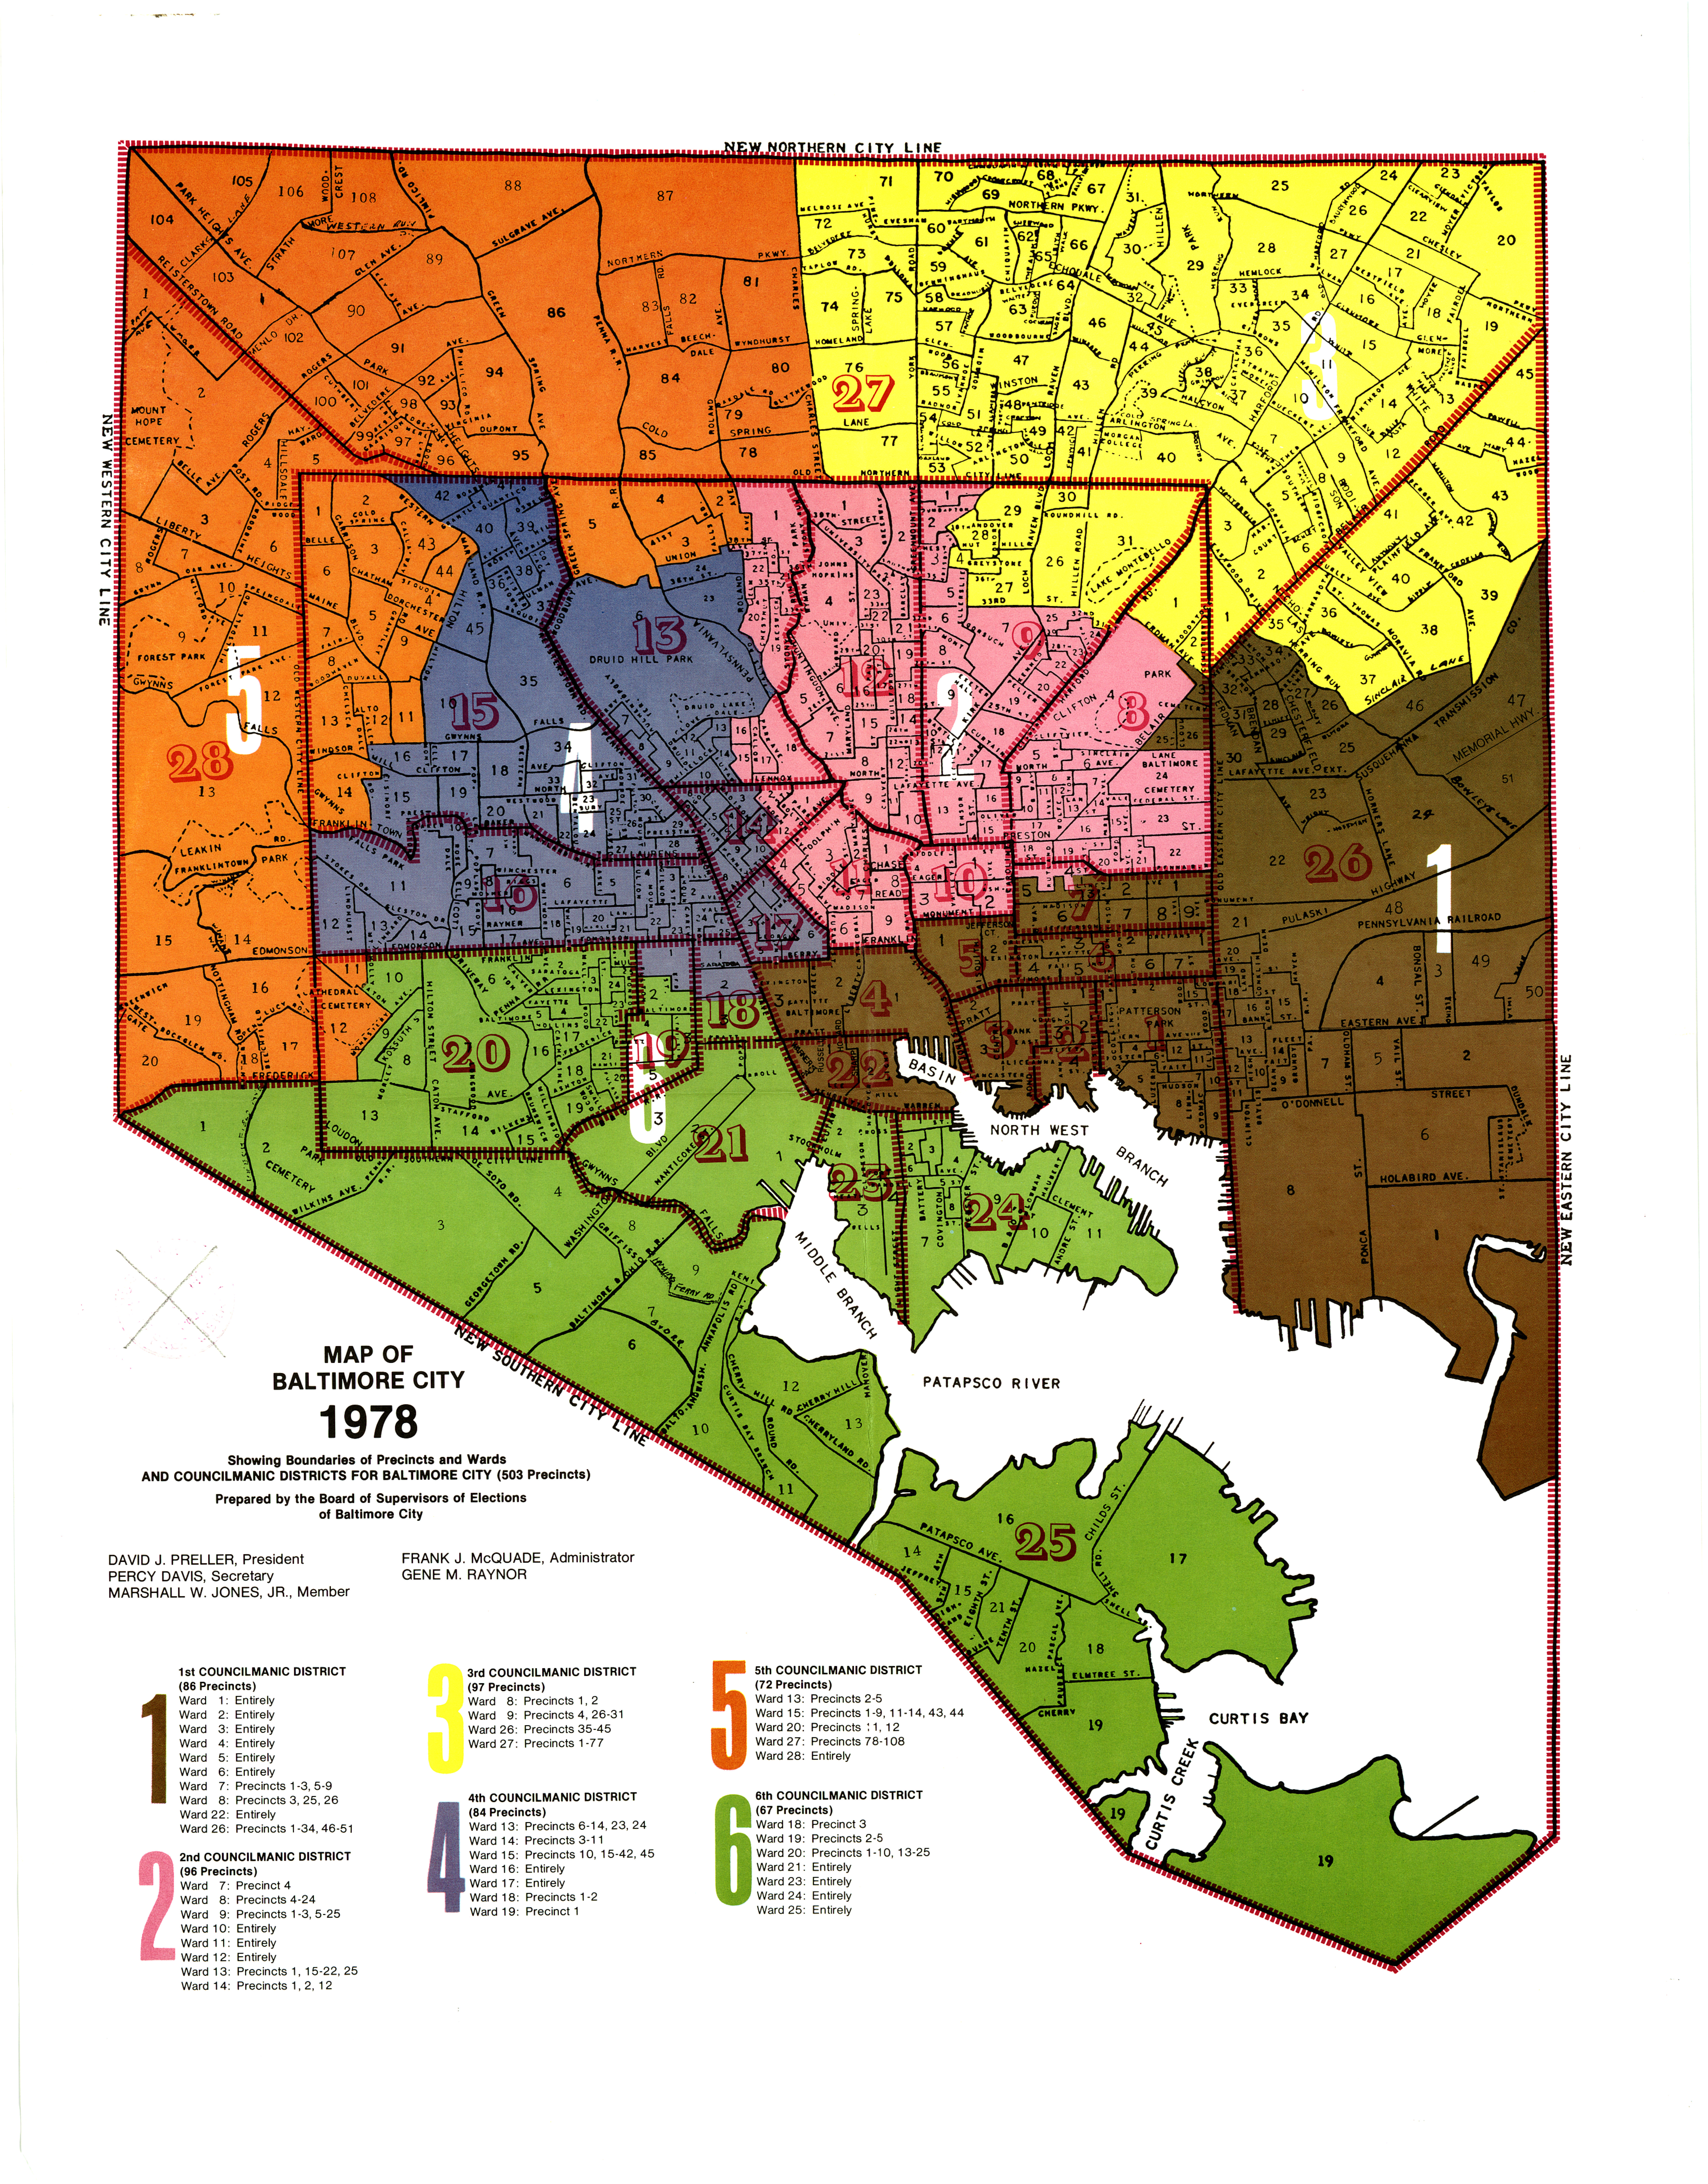 map of baltimore city 1978 showing boundaries of precincts and